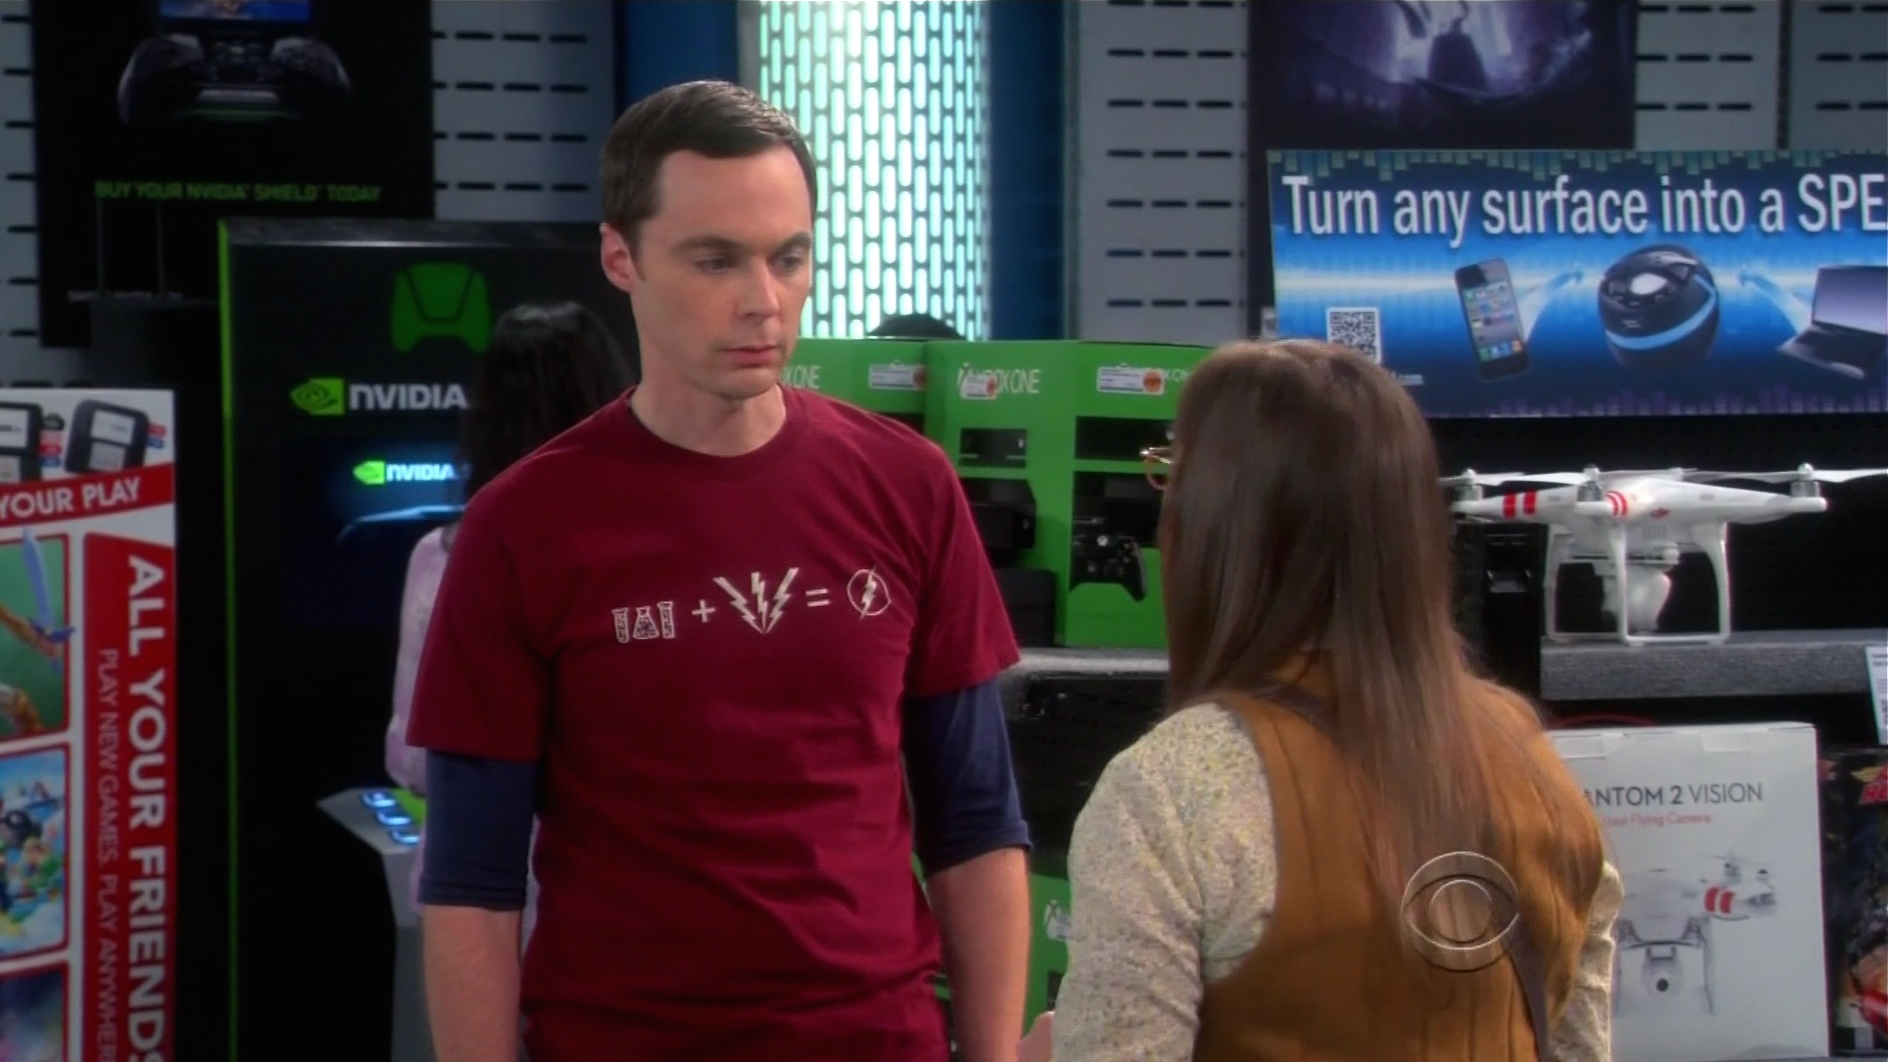 NVIDIA • Big Bang Theory